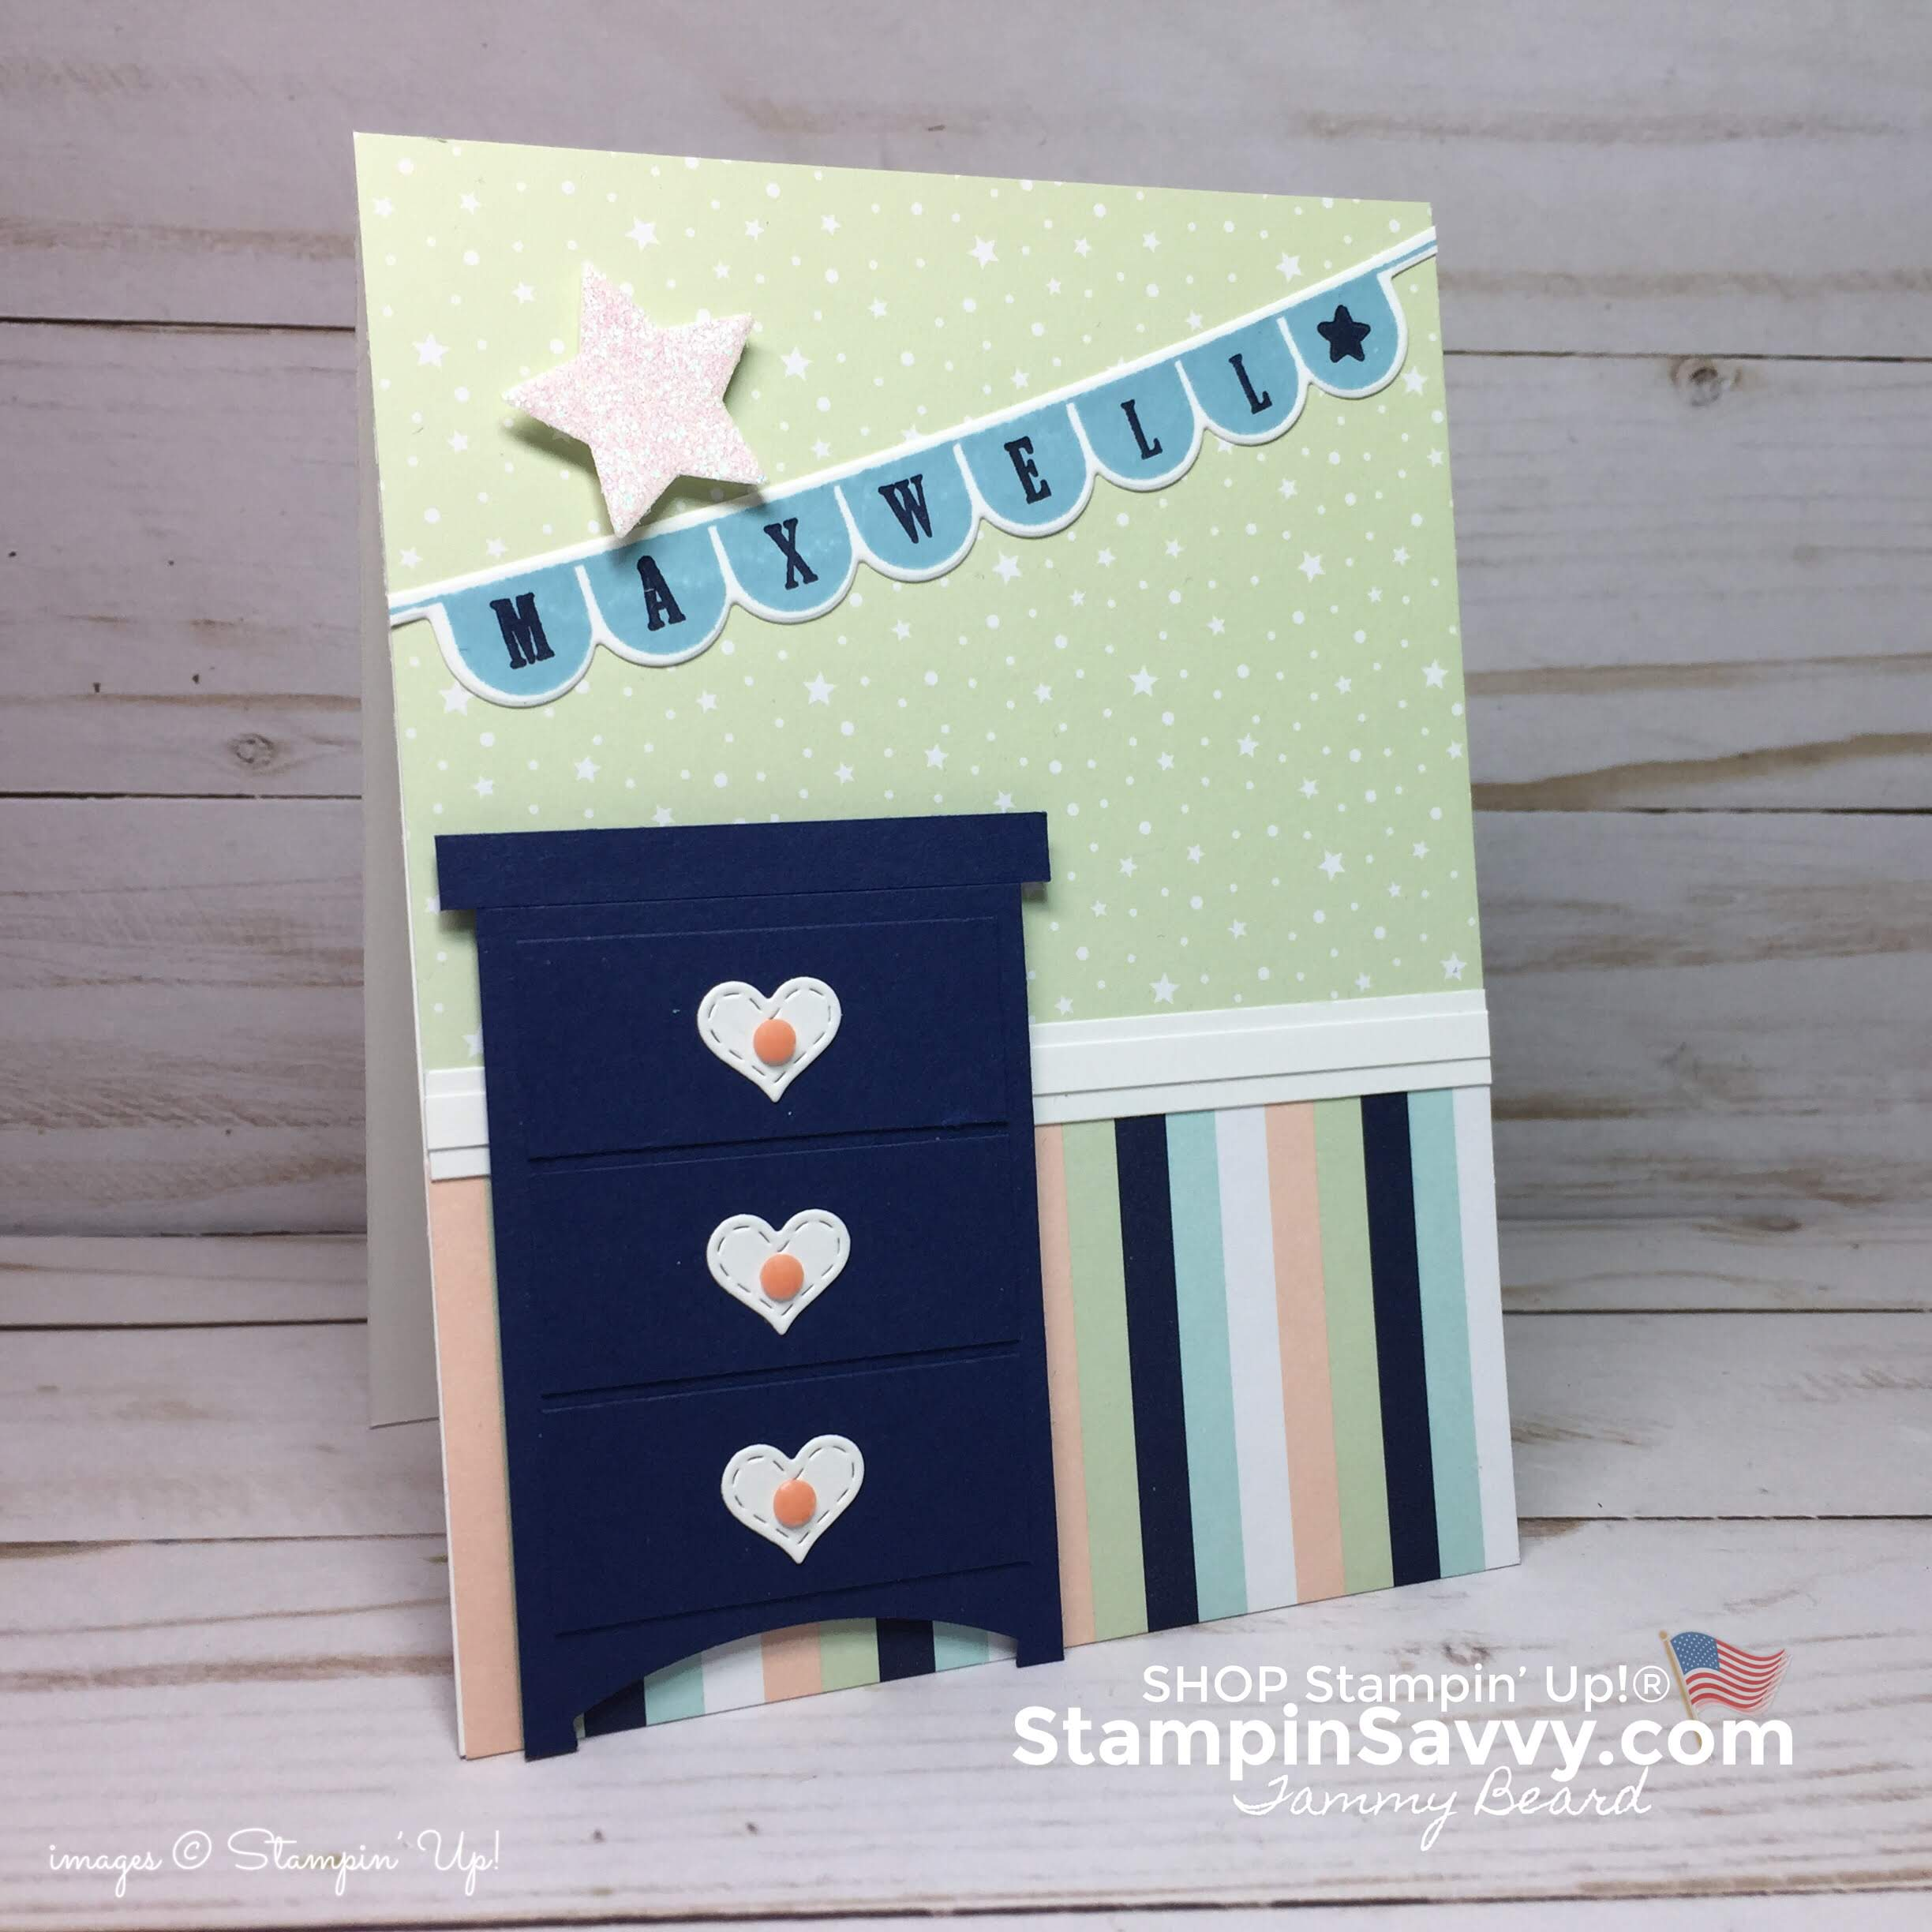 stampin up baby boy card ideas, baby boy room, stampinup, stampin savvy, tammy beard